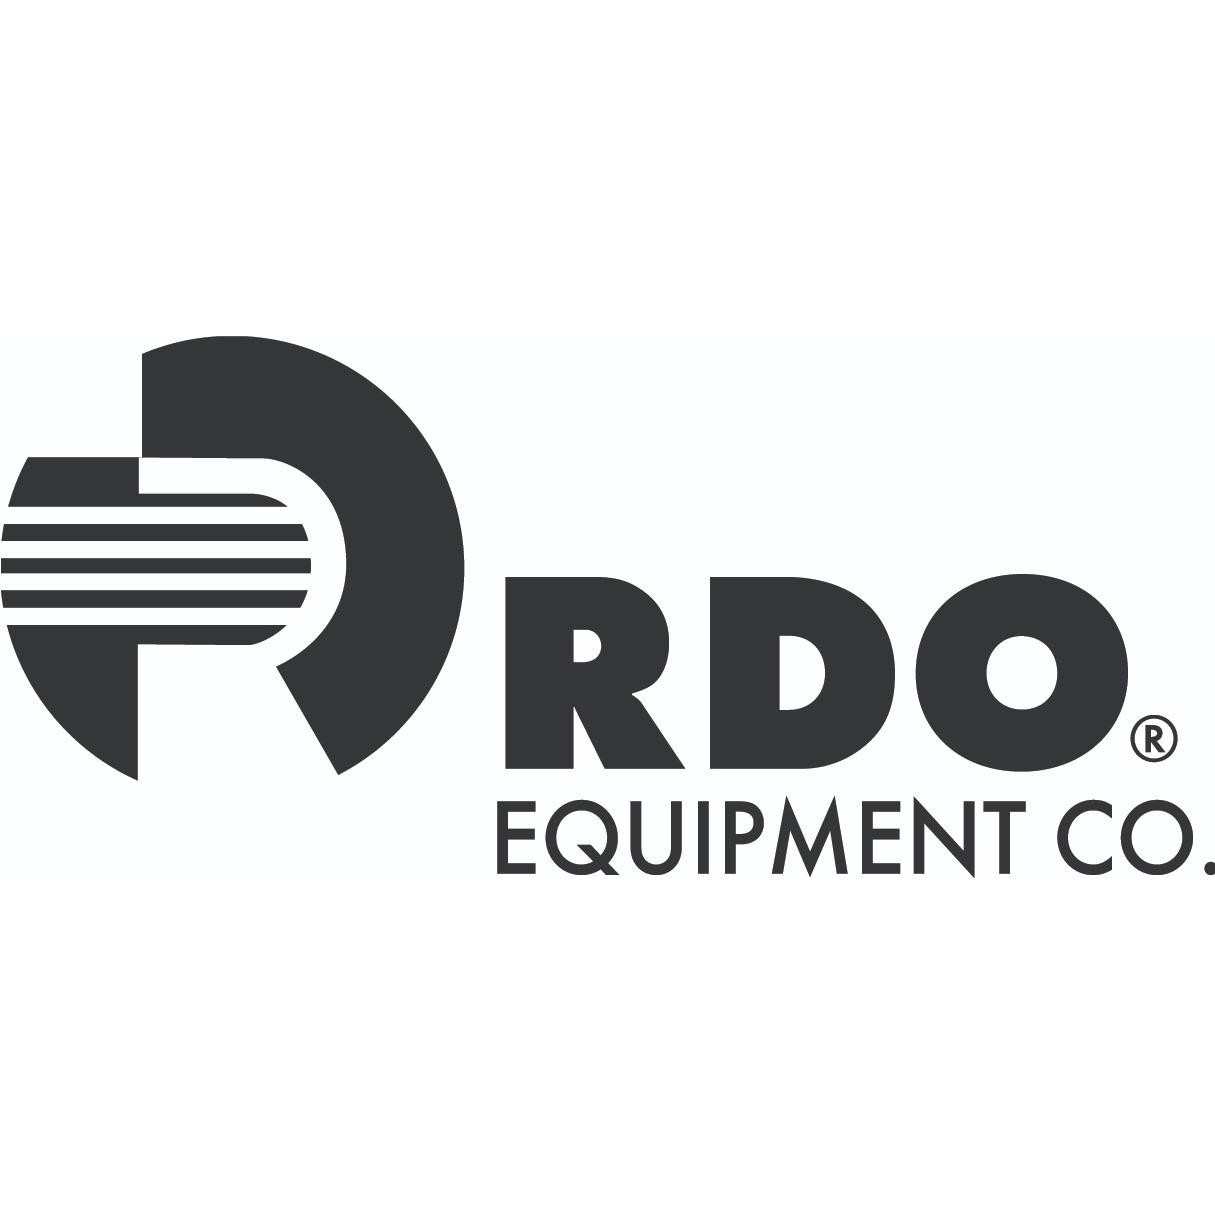 RDO Equipment Co. - Lawn and Land Equipment - Bismarck, ND 58504 - (701)946-7165 | ShowMeLocal.com